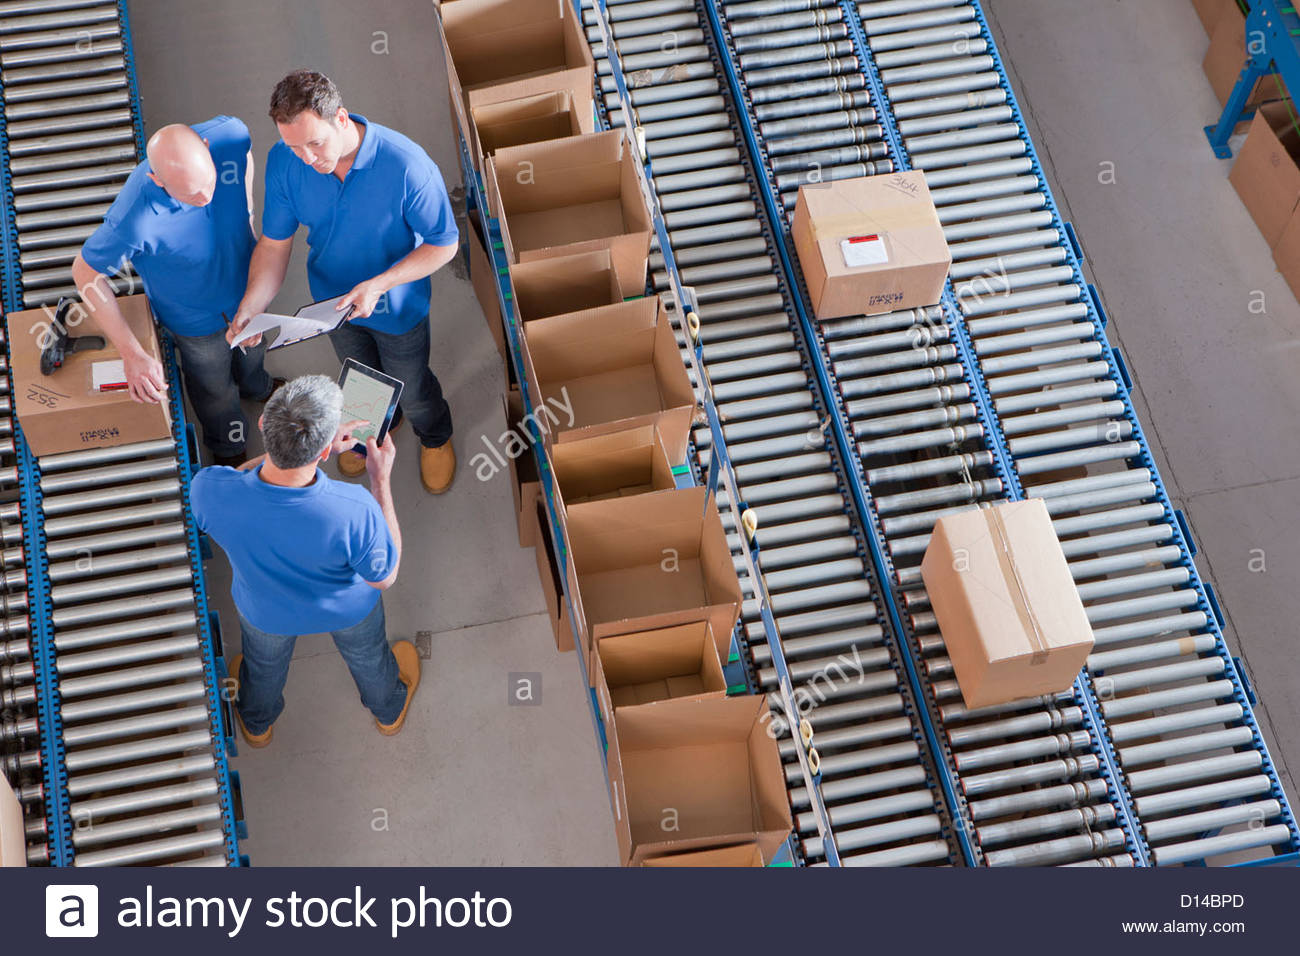 Workers meeting among boxes on conveyor belts in distribution warehouse Stock Photo